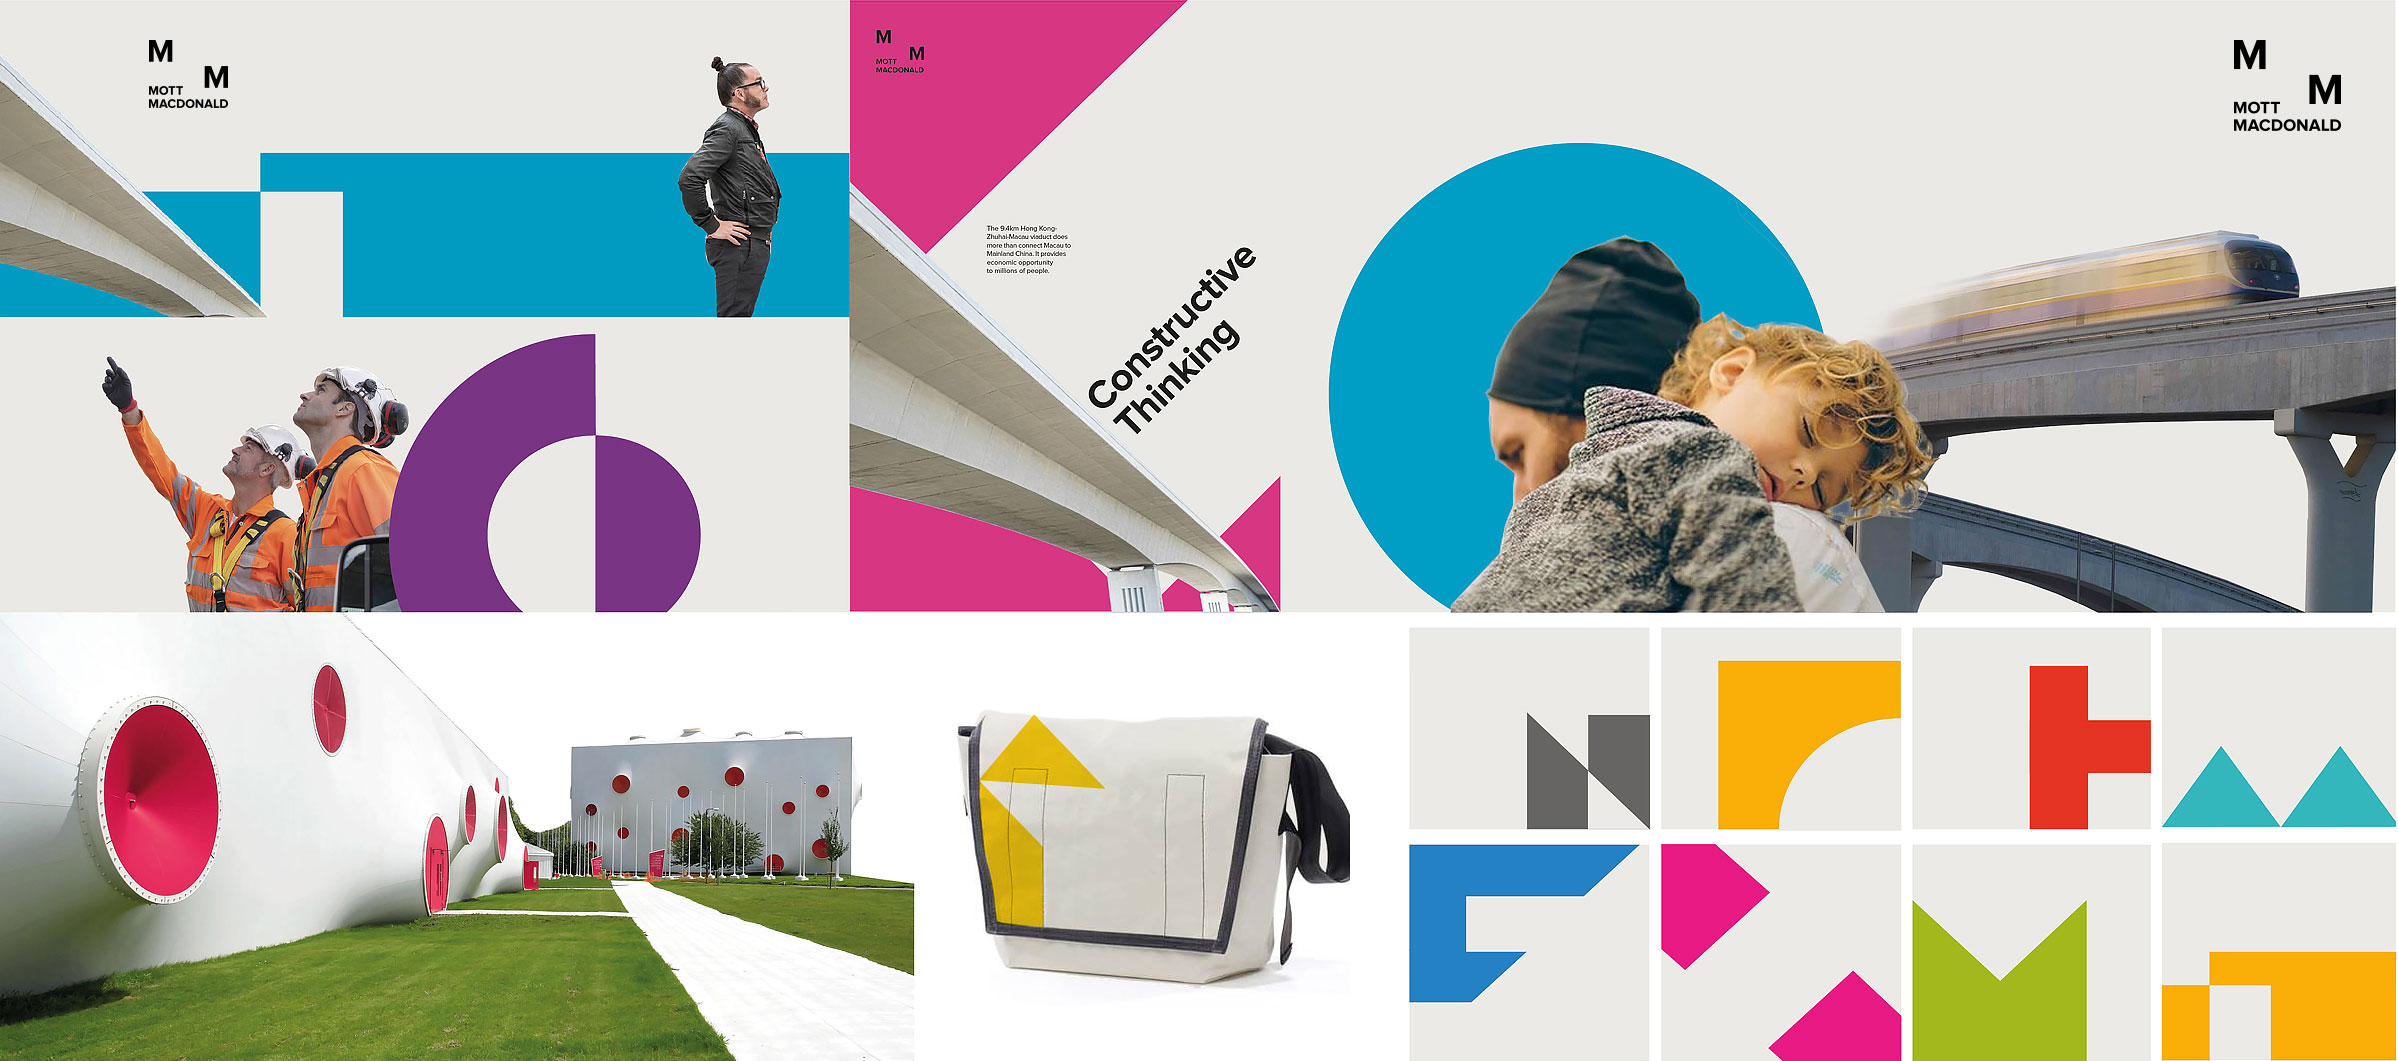 Overall brand identity and visual language